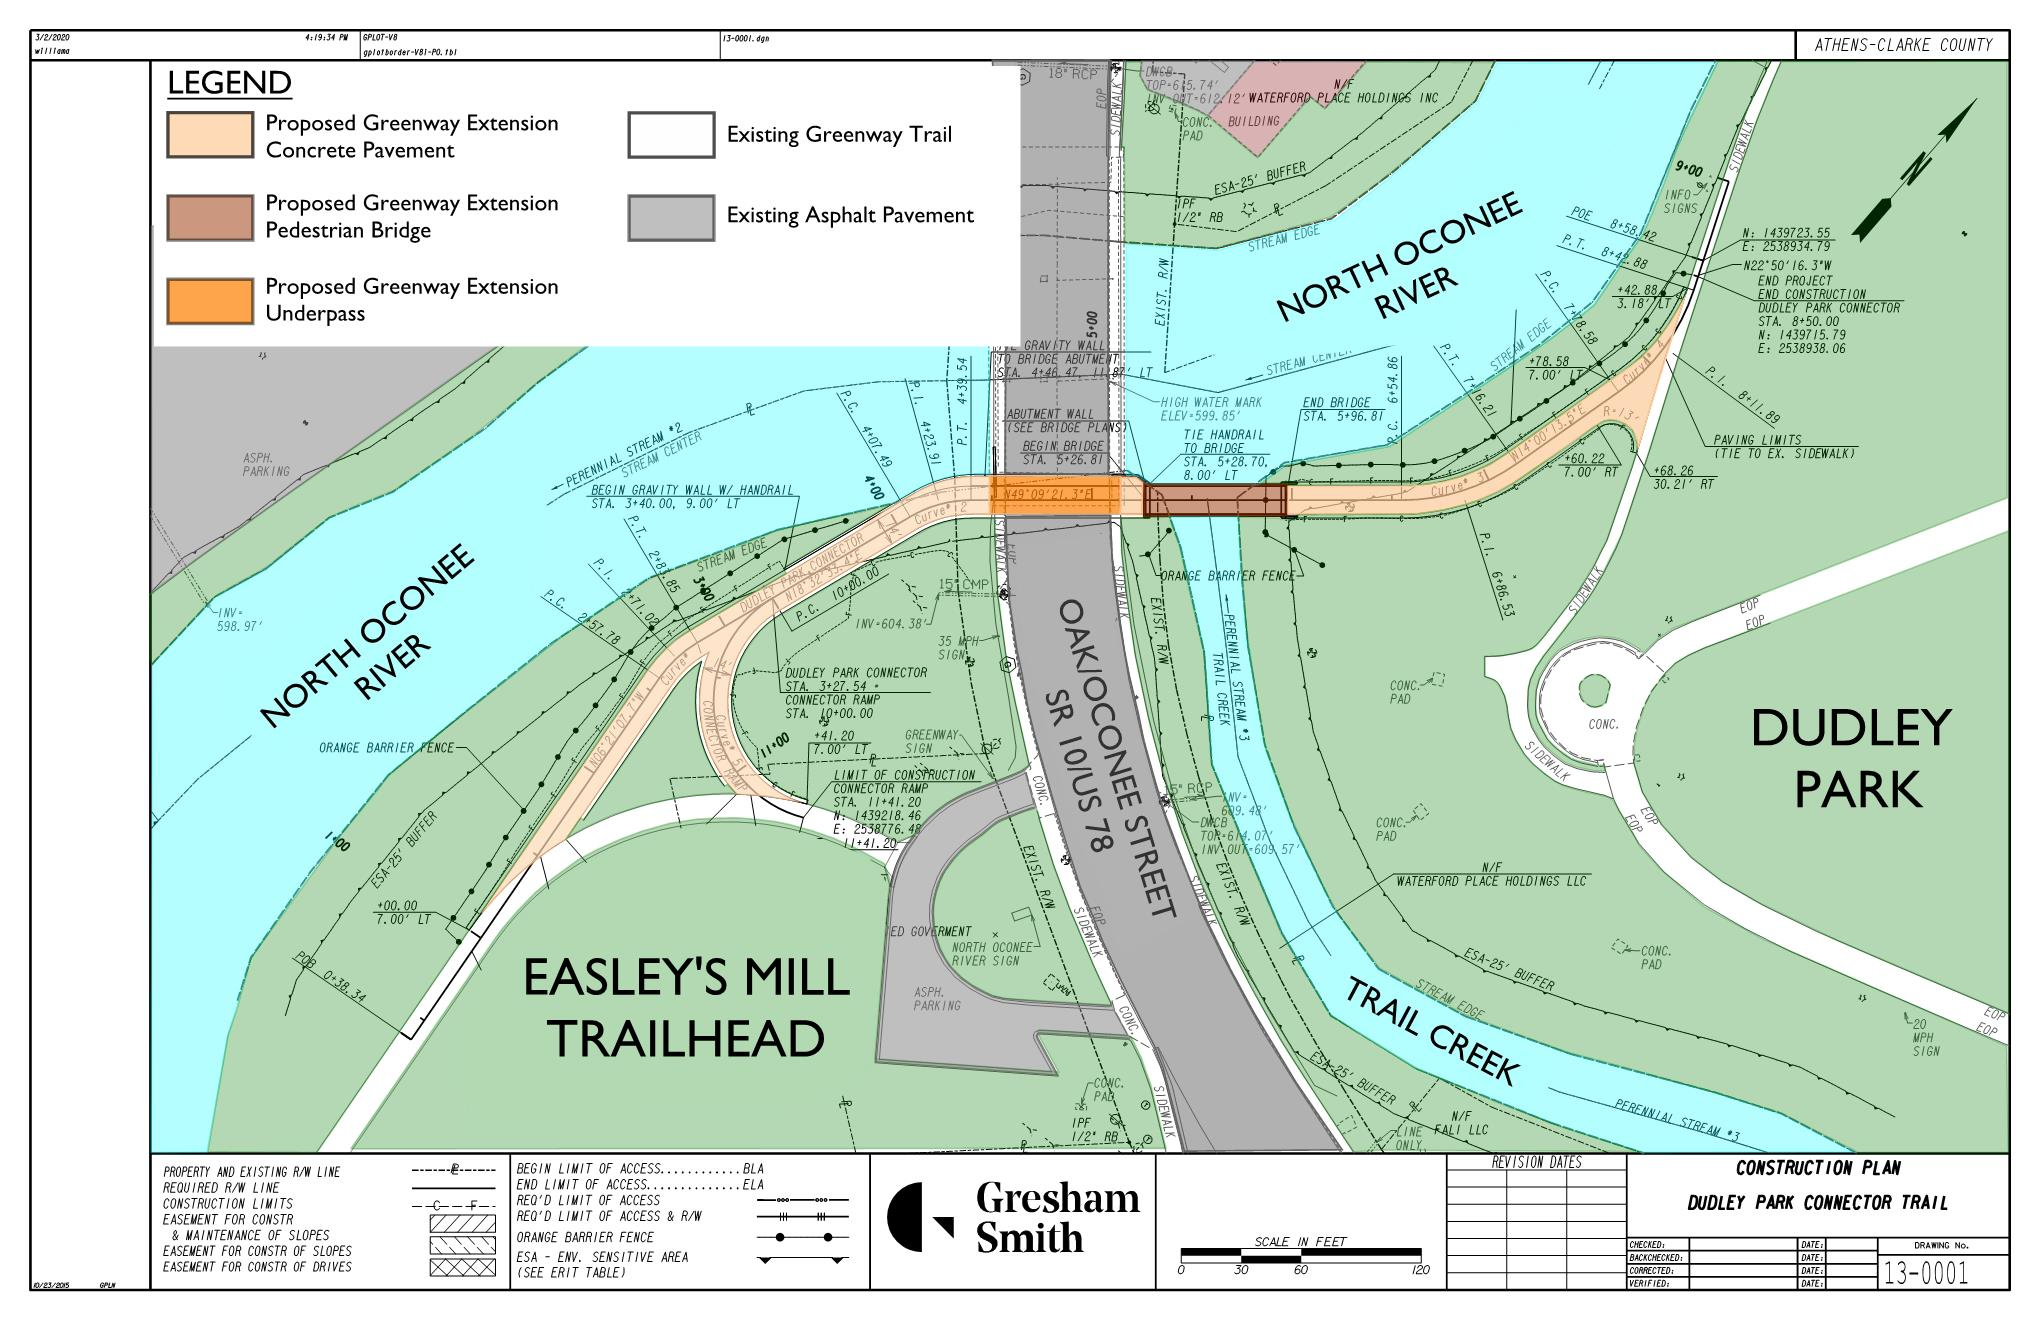 oak/oconee st. bridge greenway project - Exhibit 1 - Greenway Extension-Dudley